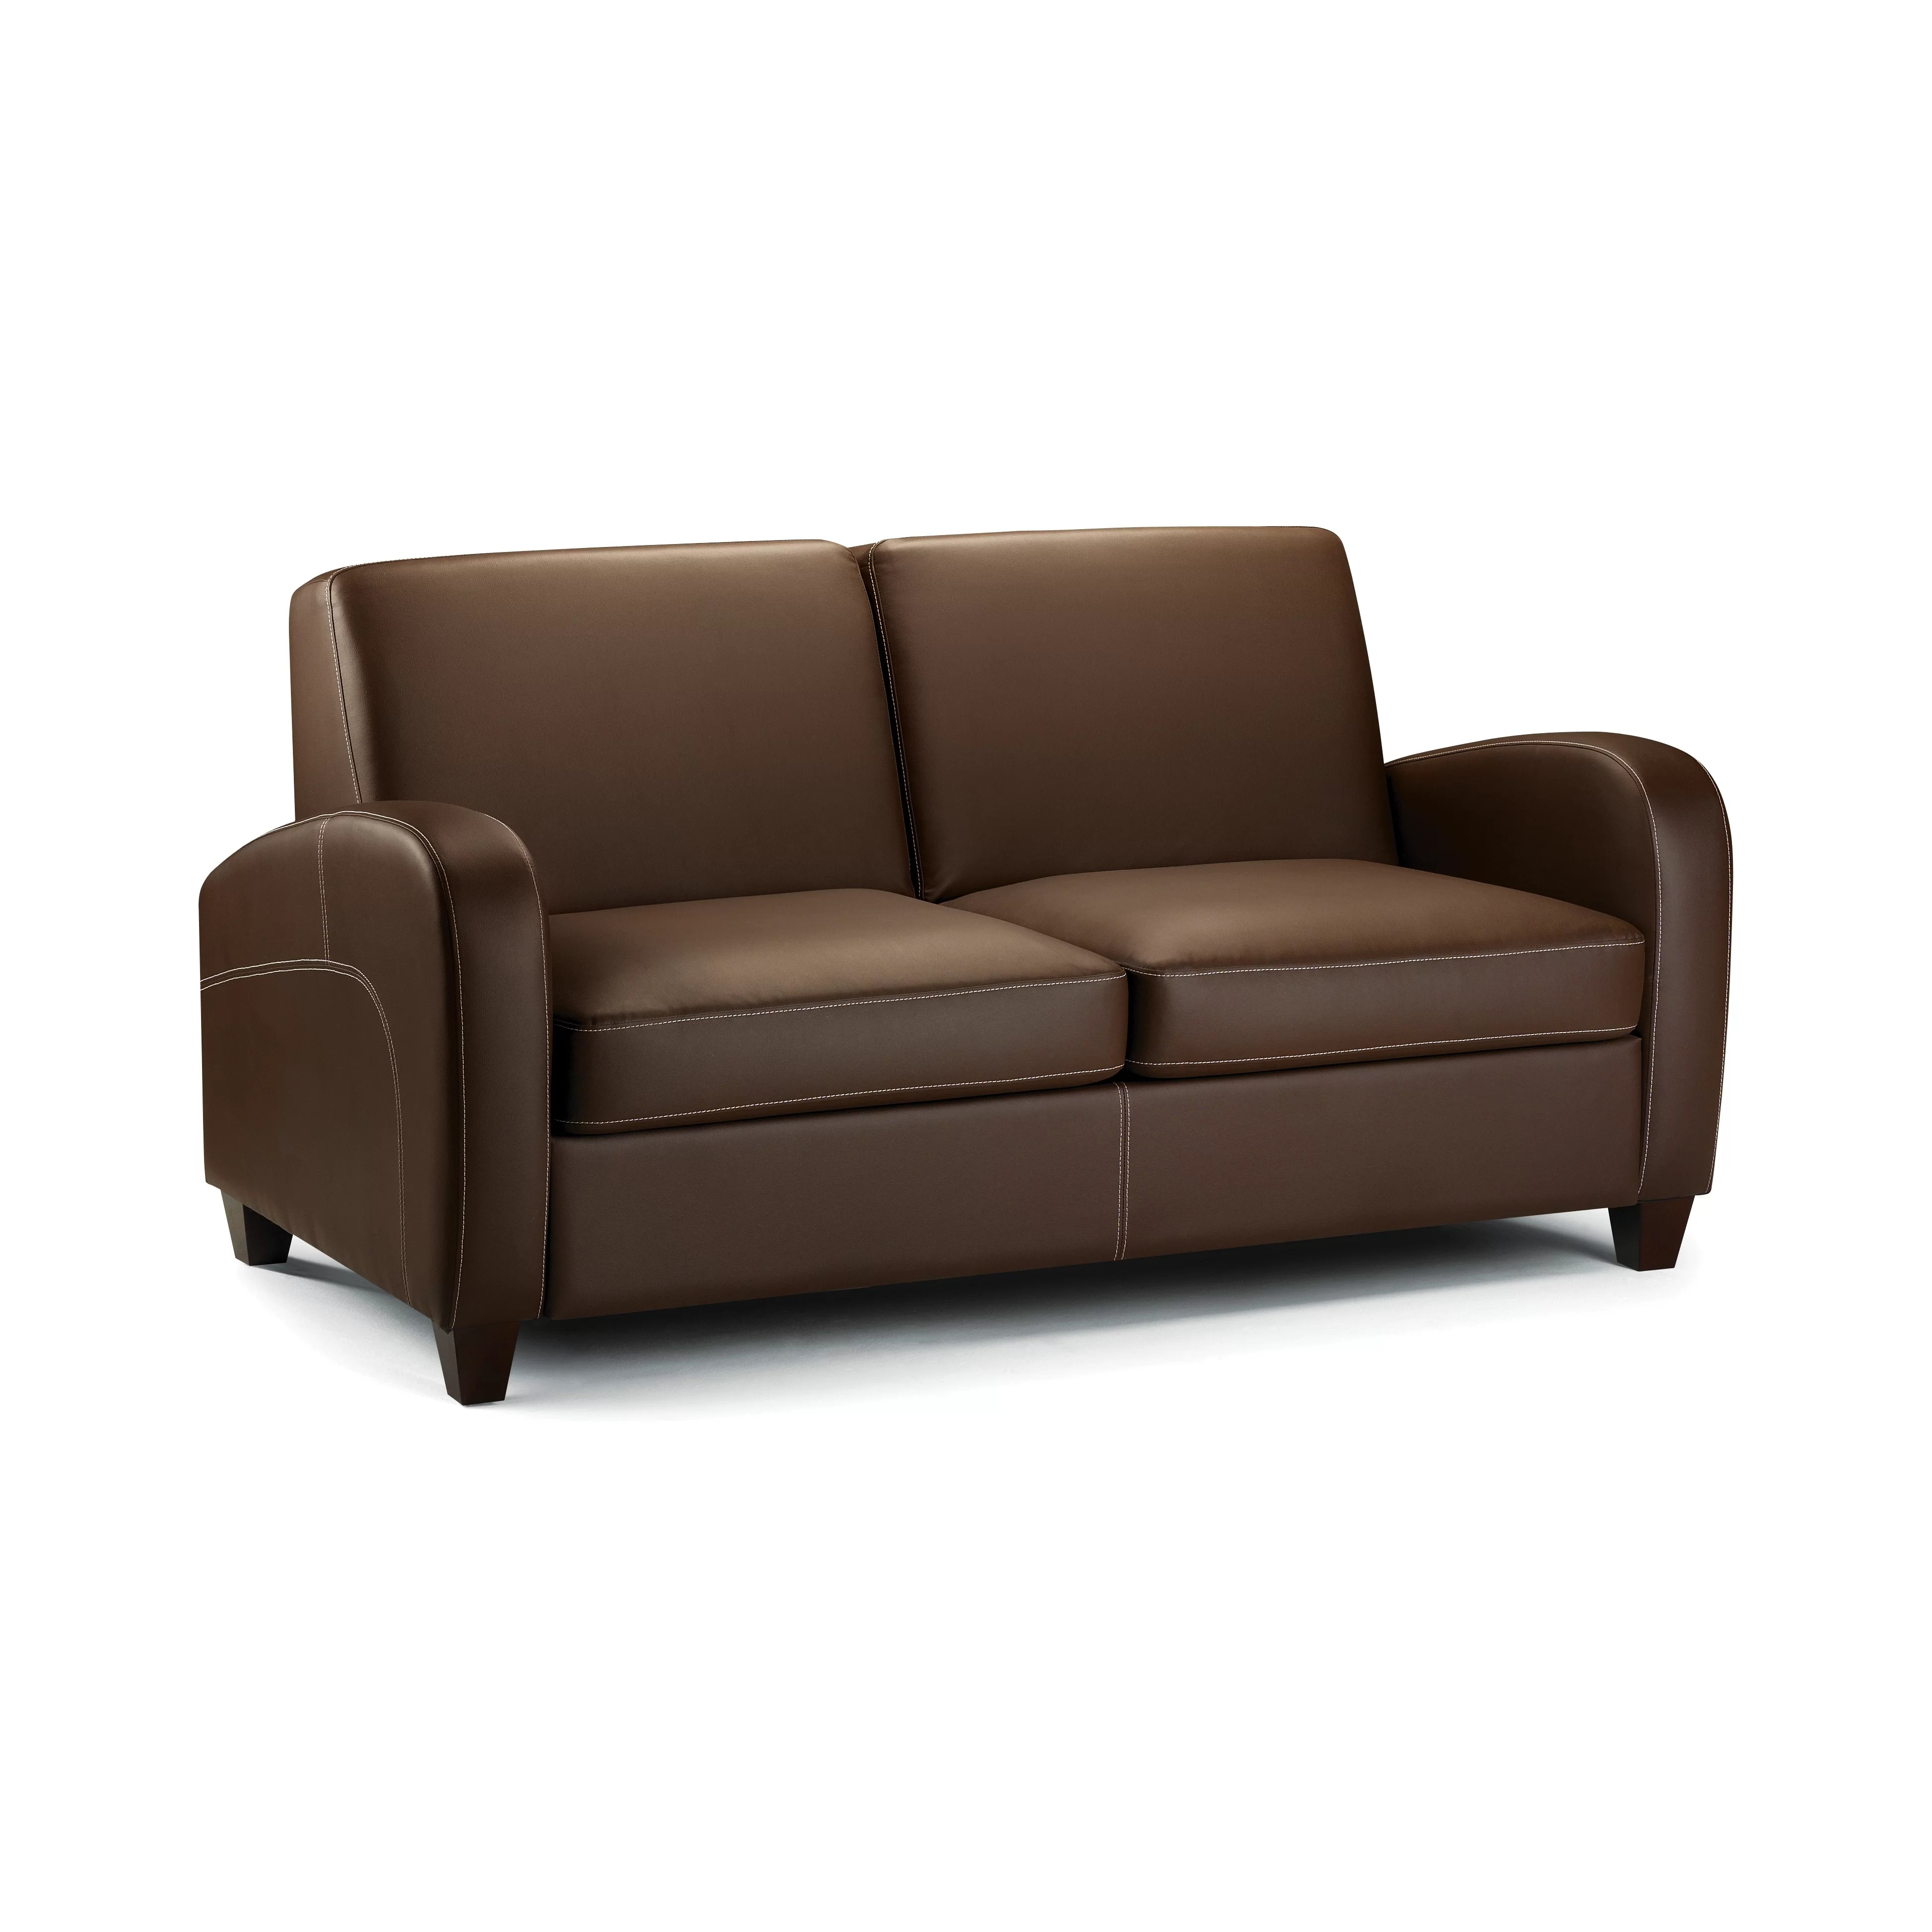 fold out sofa bed uk corduroy fabric all home rossini 2 seater and reviews